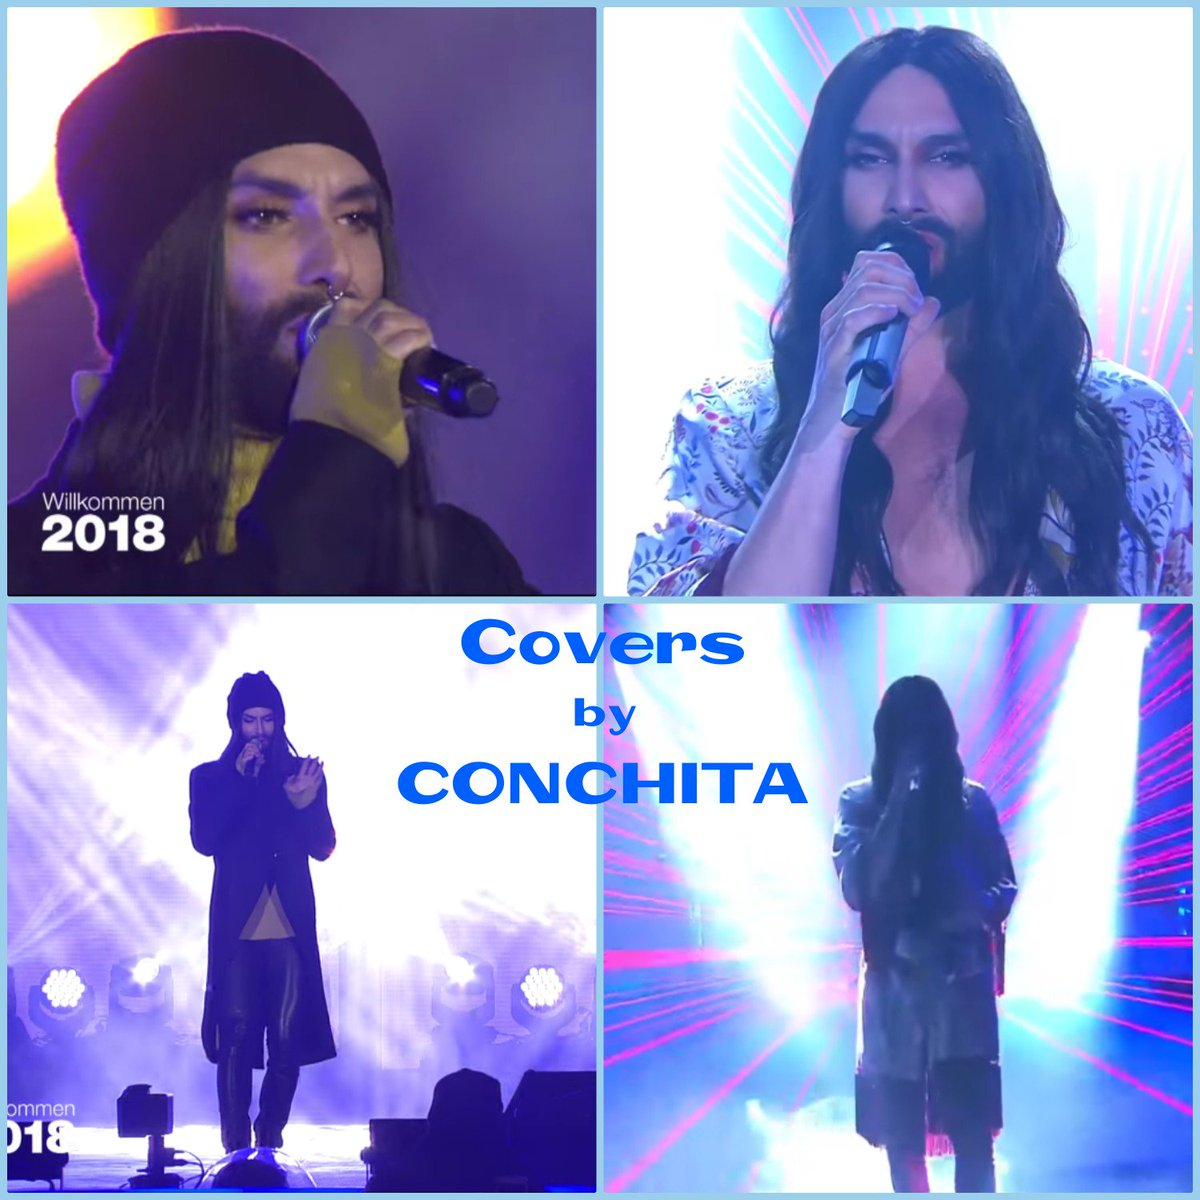 #Conchita &#39;s way to sing these two wonderful song is unique and his voice is incredible  #ThisIsMe &amp; #TheShowMustGoOn    https:// youtu.be/7MLIkG6d32U  &nbsp;     https:// youtu.be/aDhVzdPtUaQ  &nbsp;   #ConchitaWurst #TomNeuwirth #theunstoppables #ConchitaLIVE <br>http://pic.twitter.com/ScEaeL9eFp